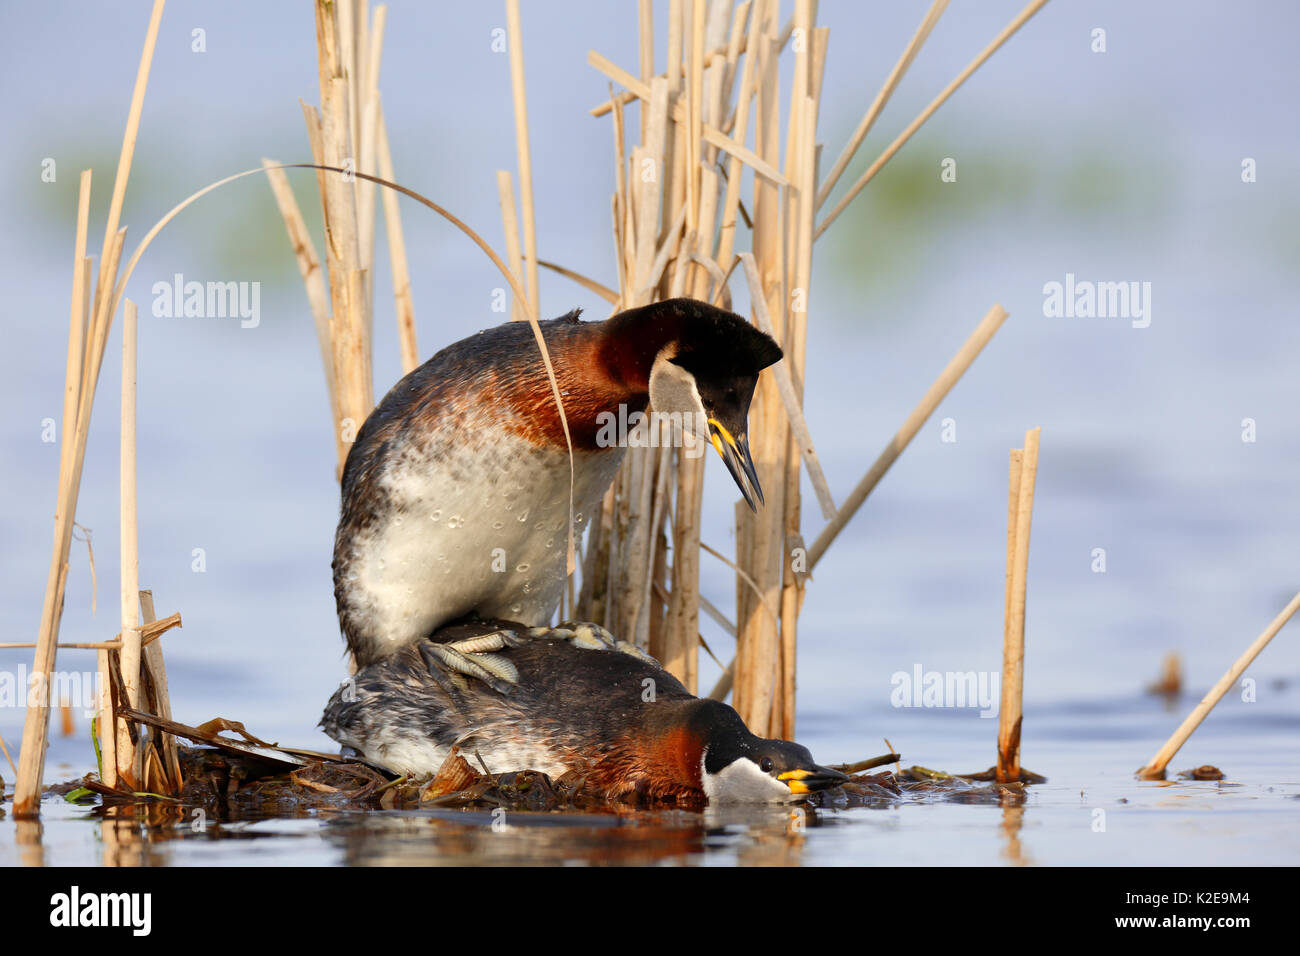 Red-necked grebes (Podiceps grisegena), mating on a nest, nature river area Peene Valley, Mecklenburg-Western Pomerania, - Stock Image